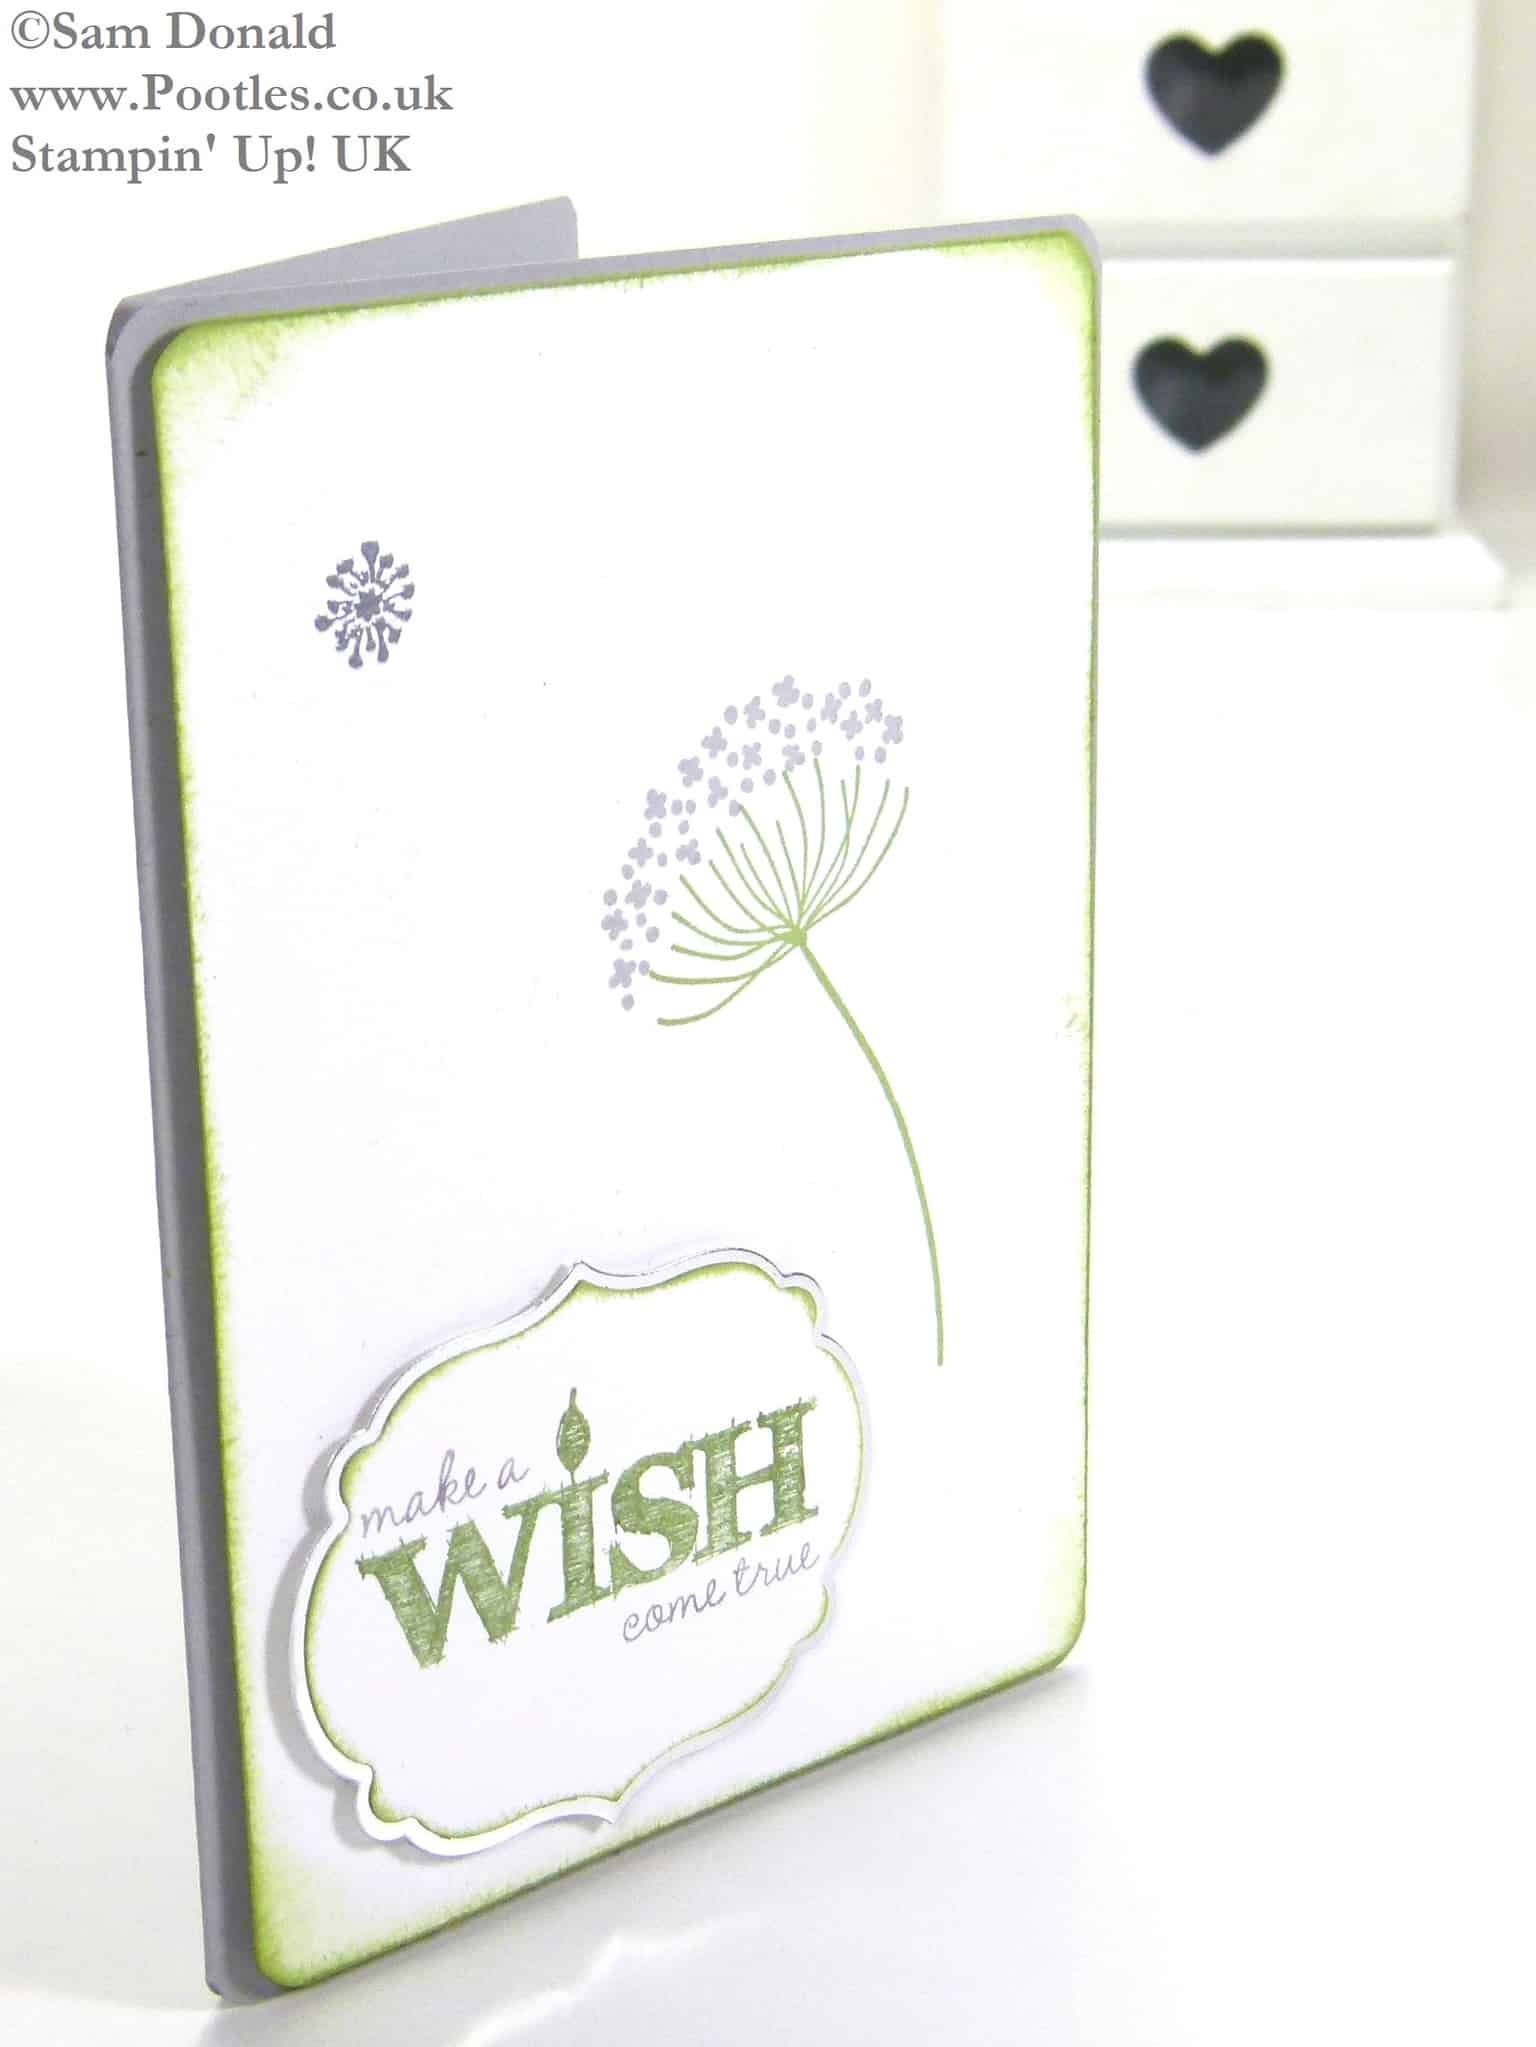 POOTLES Stampin Up UK Serene Silhouettes Make a Wish 3